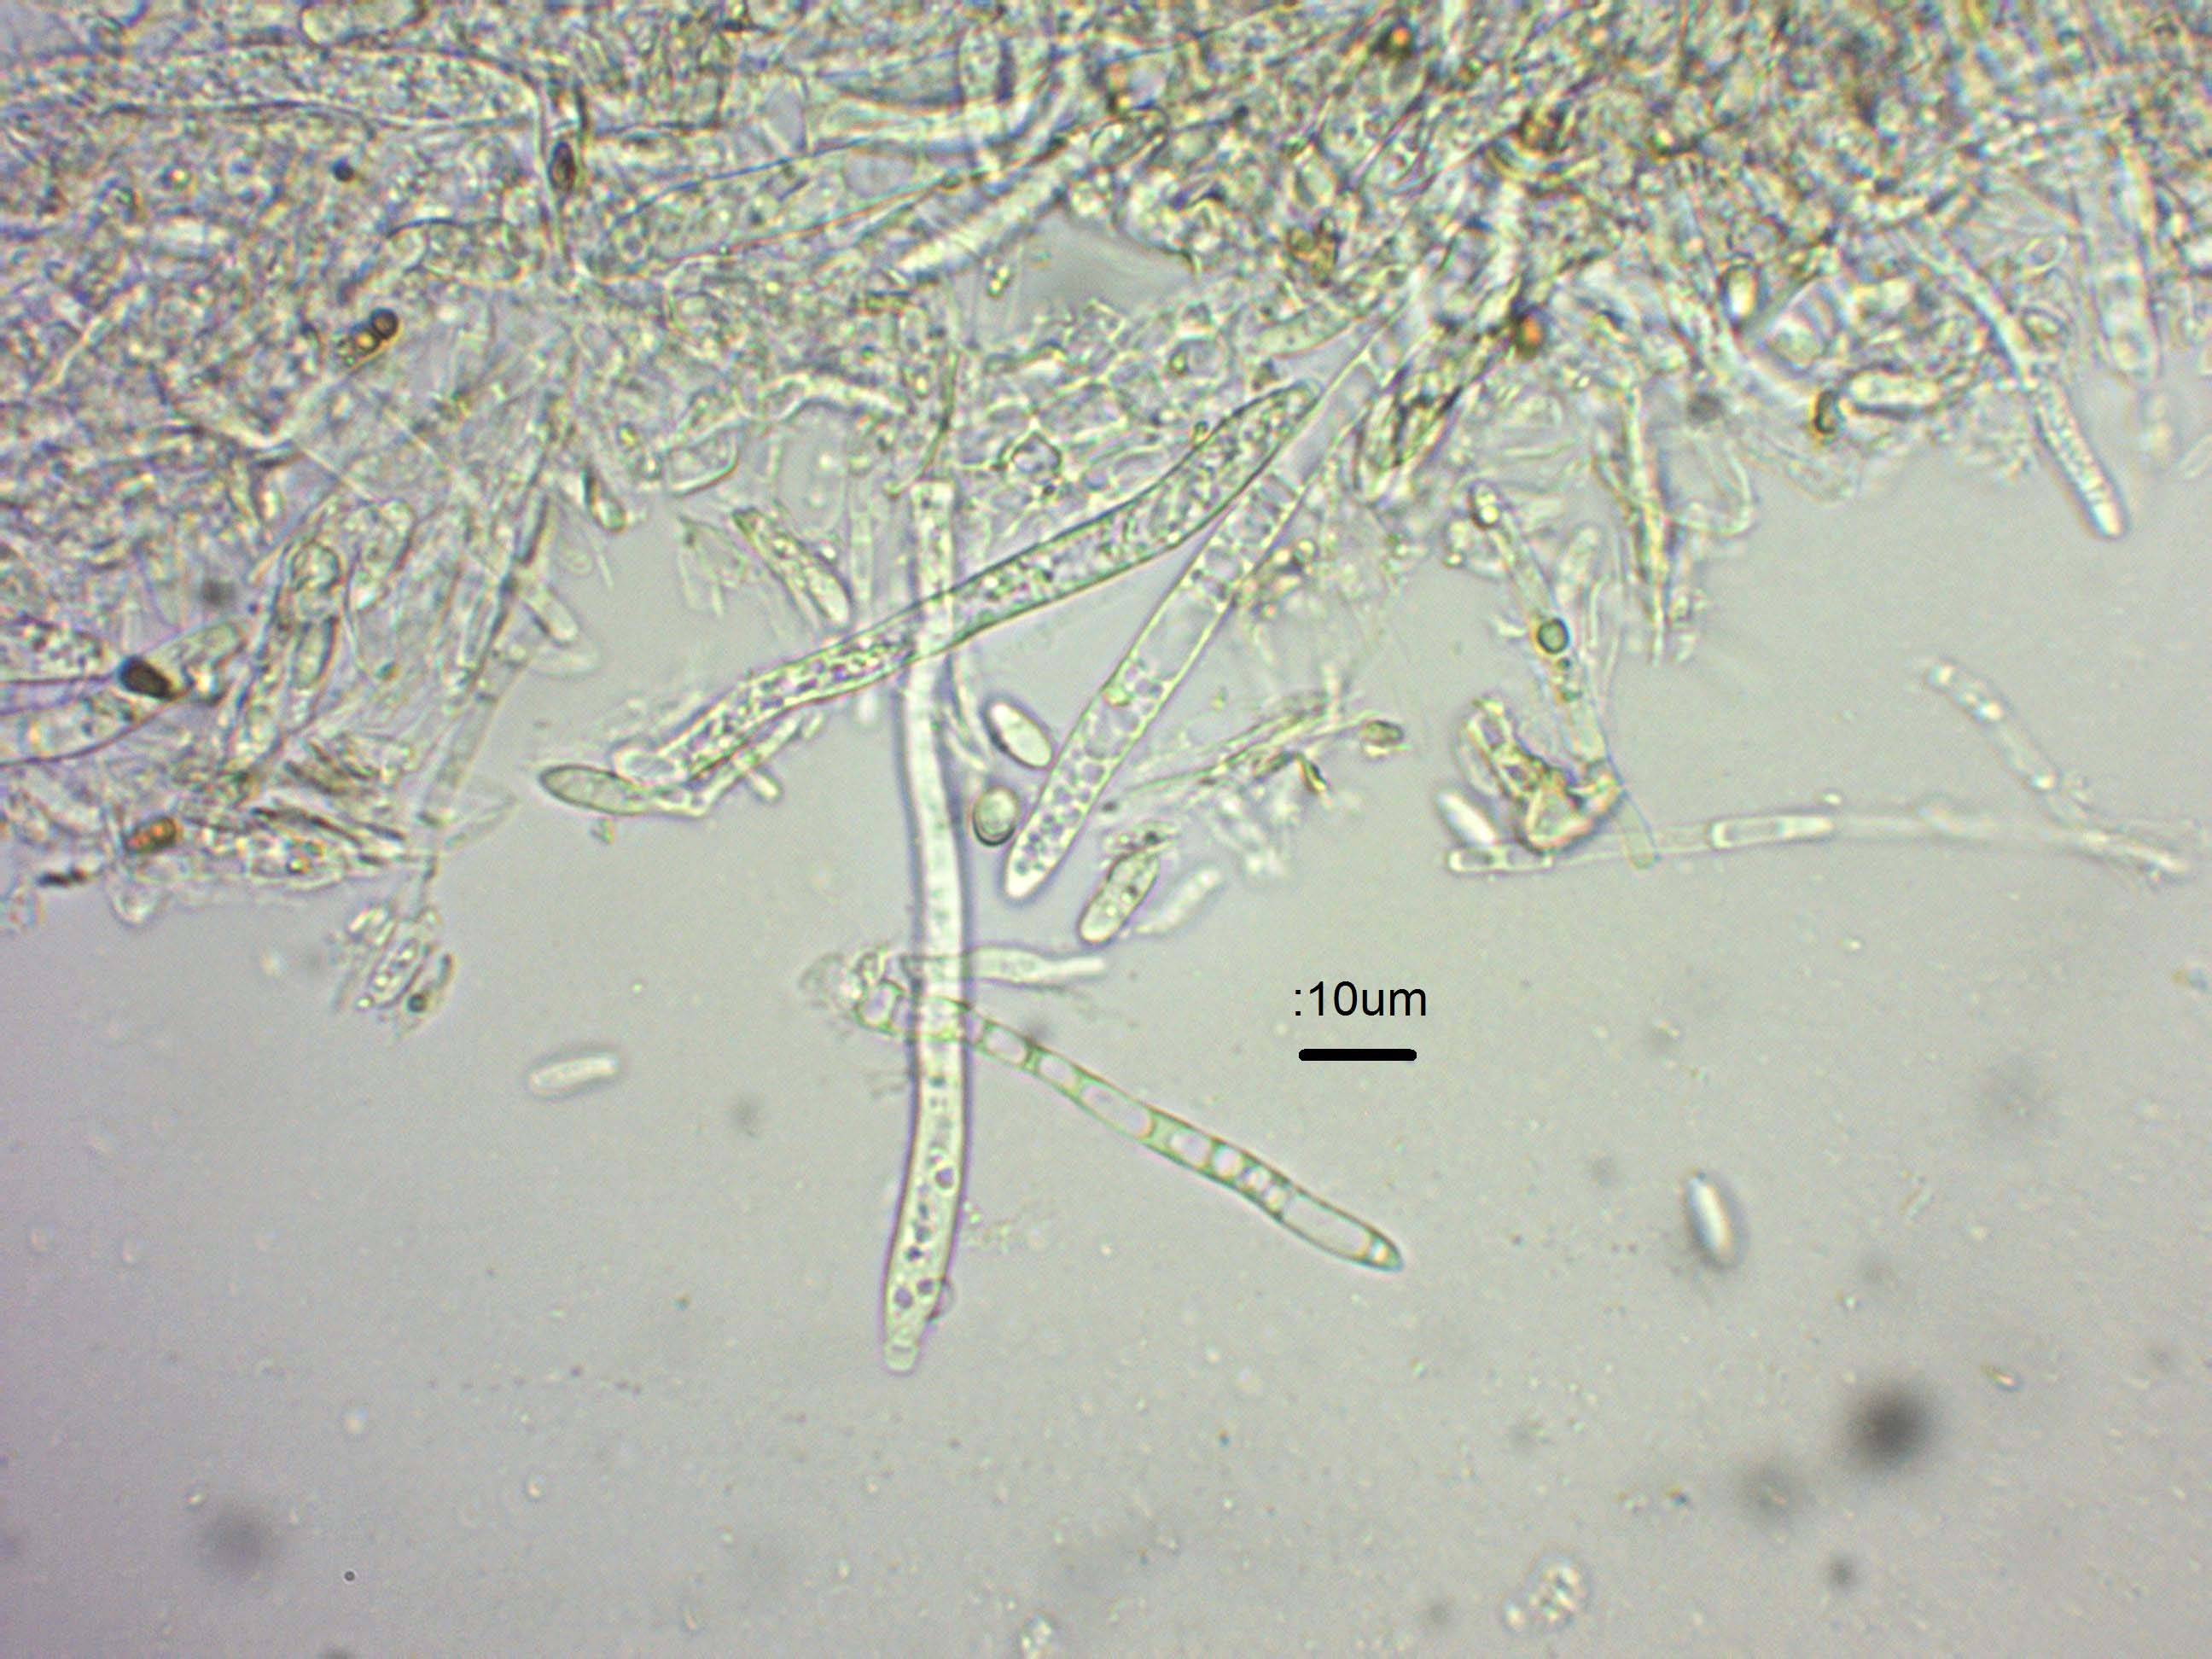 4 Asci and paraphyses in water x600.jpg